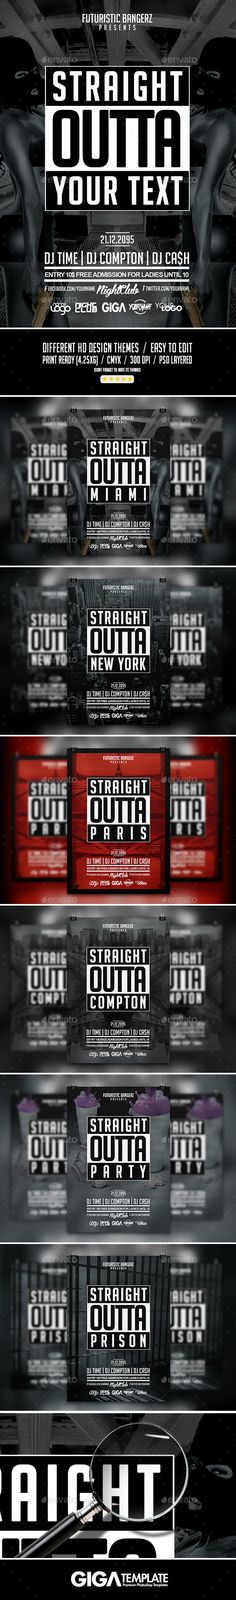 Straight Outta Party  HipHop Flyer Psd Template